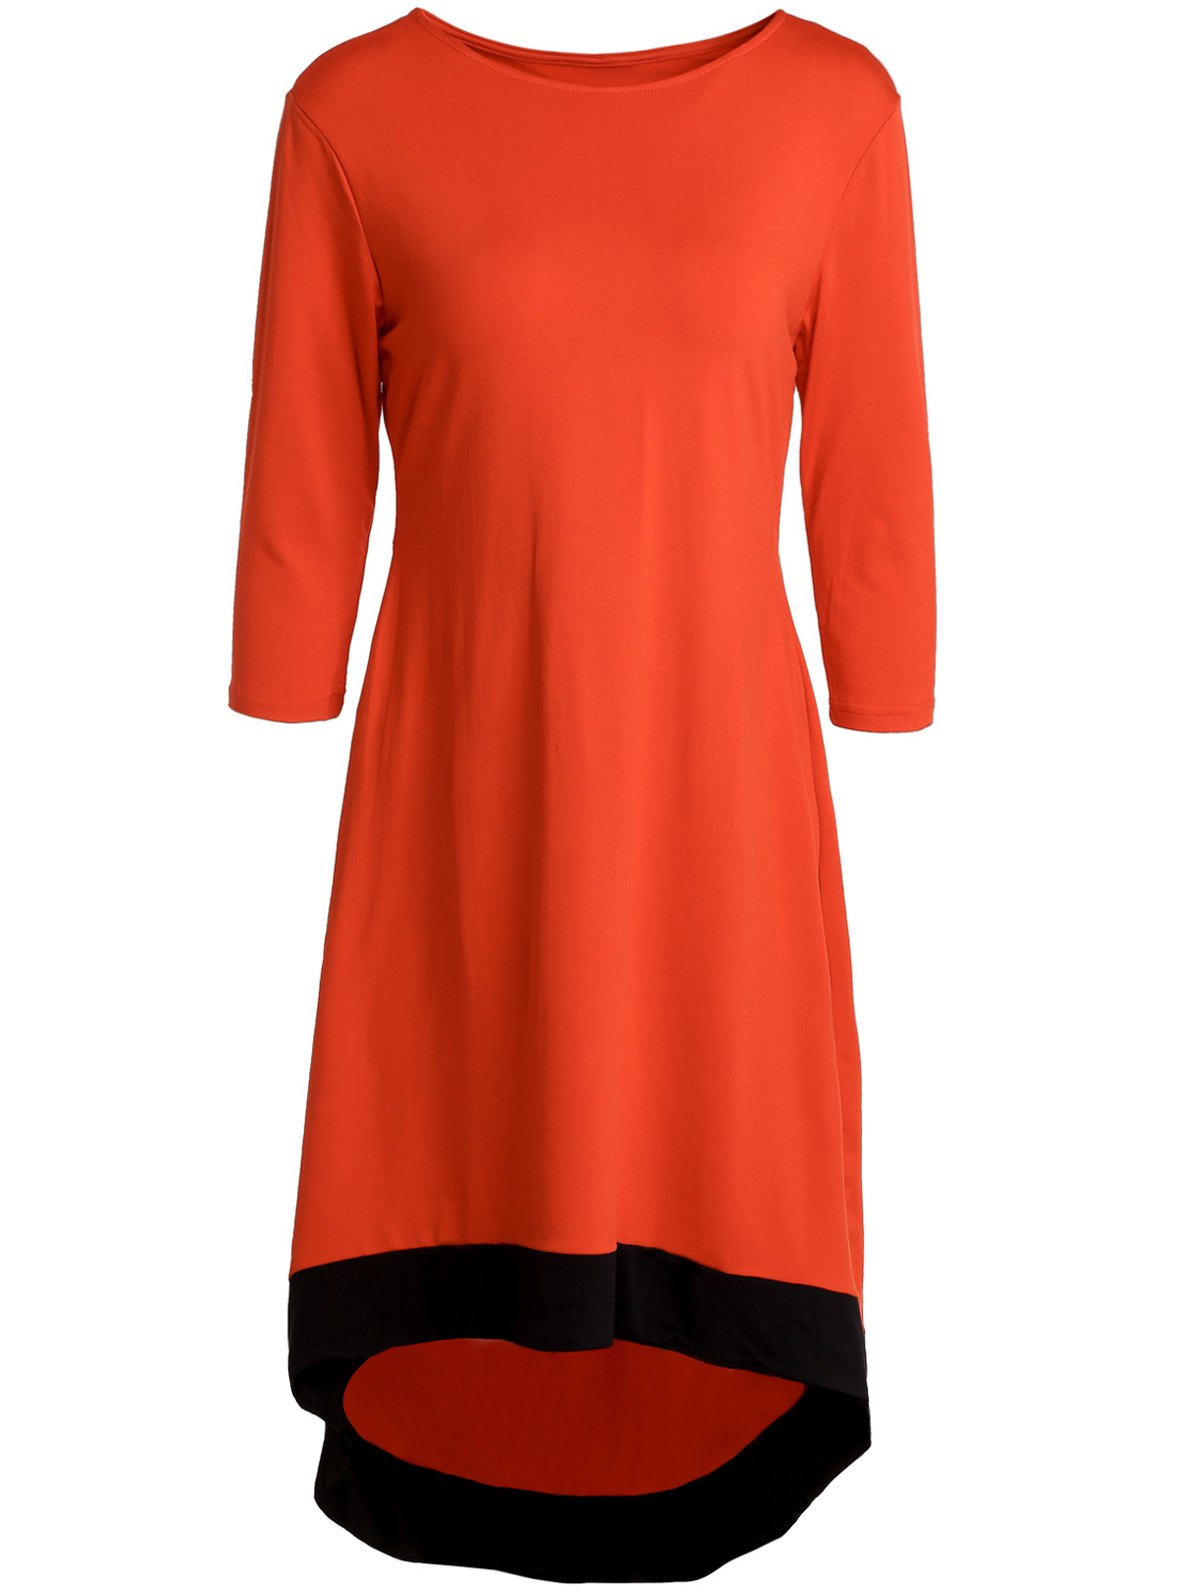 Chic 3/4 Sleeve Round Neck Asymmetrical Women's Dress - RED L